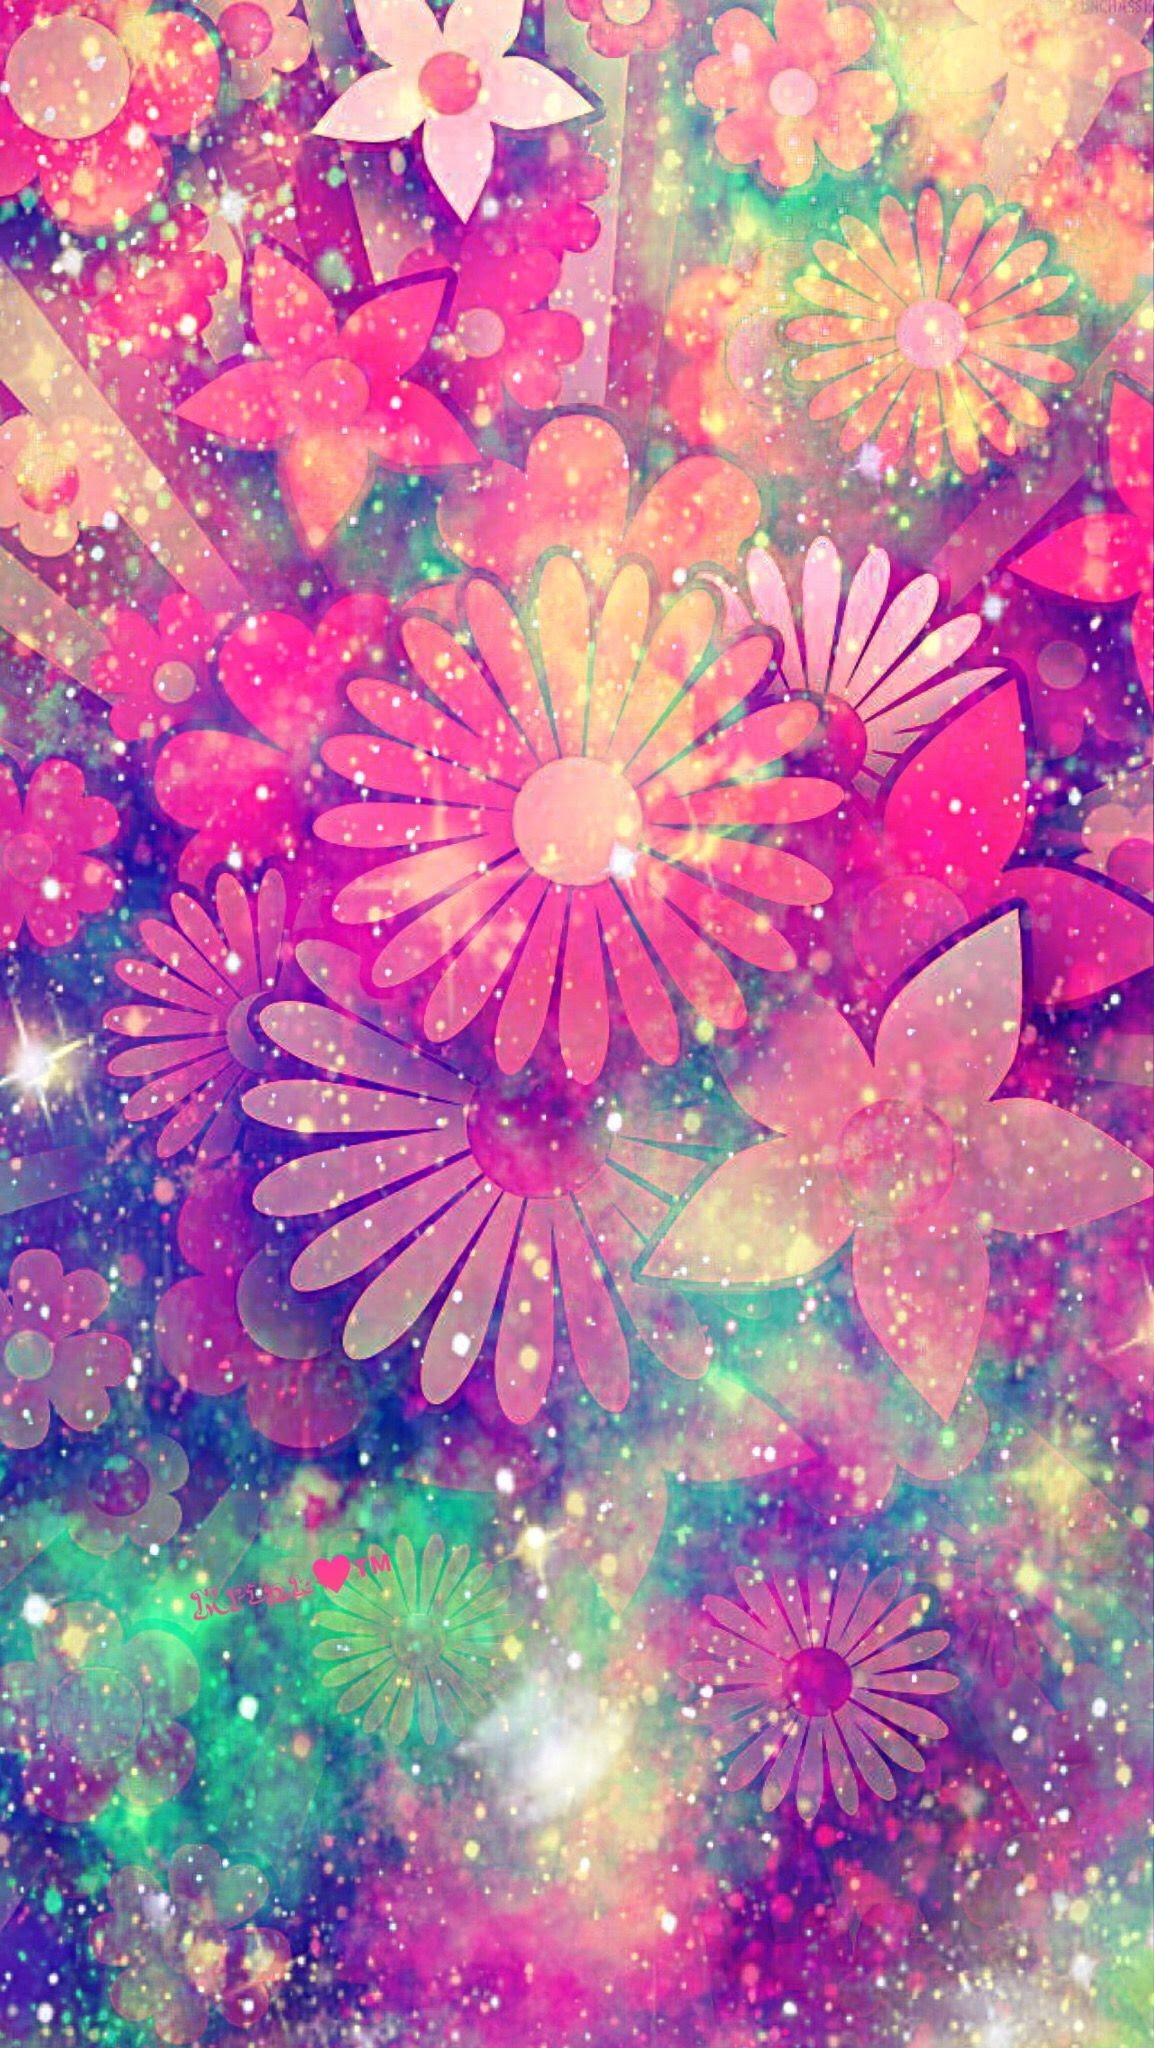 Pink Pretty Wallpaper 67 Images - pastel cute background design galaxy background